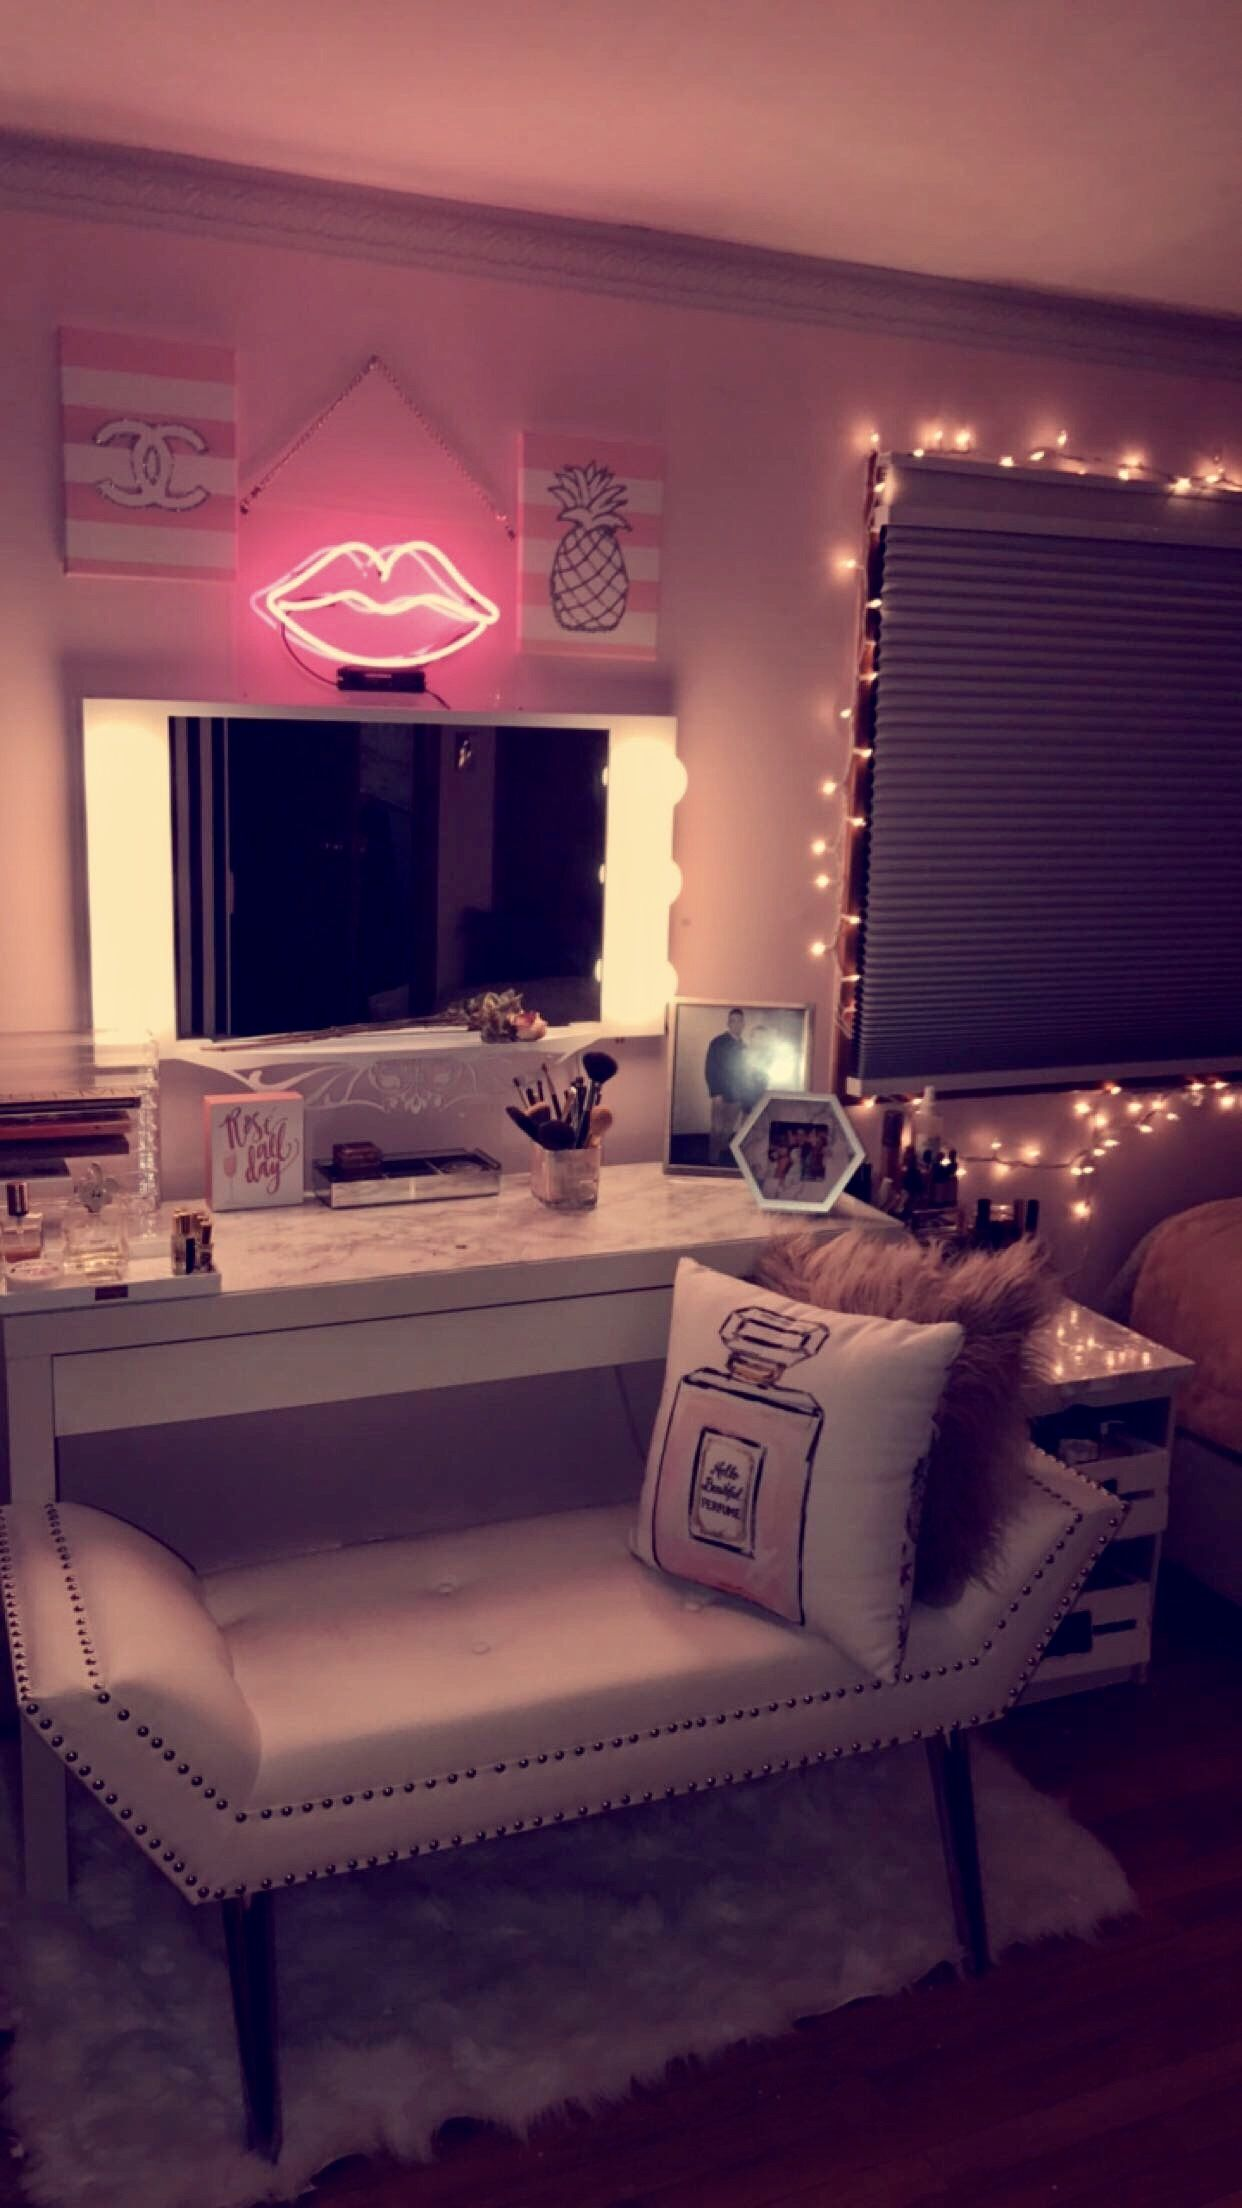 Designs Of Rooms: Makeup Room Ideas #Makeup Room DIY (Makeup Room Decor